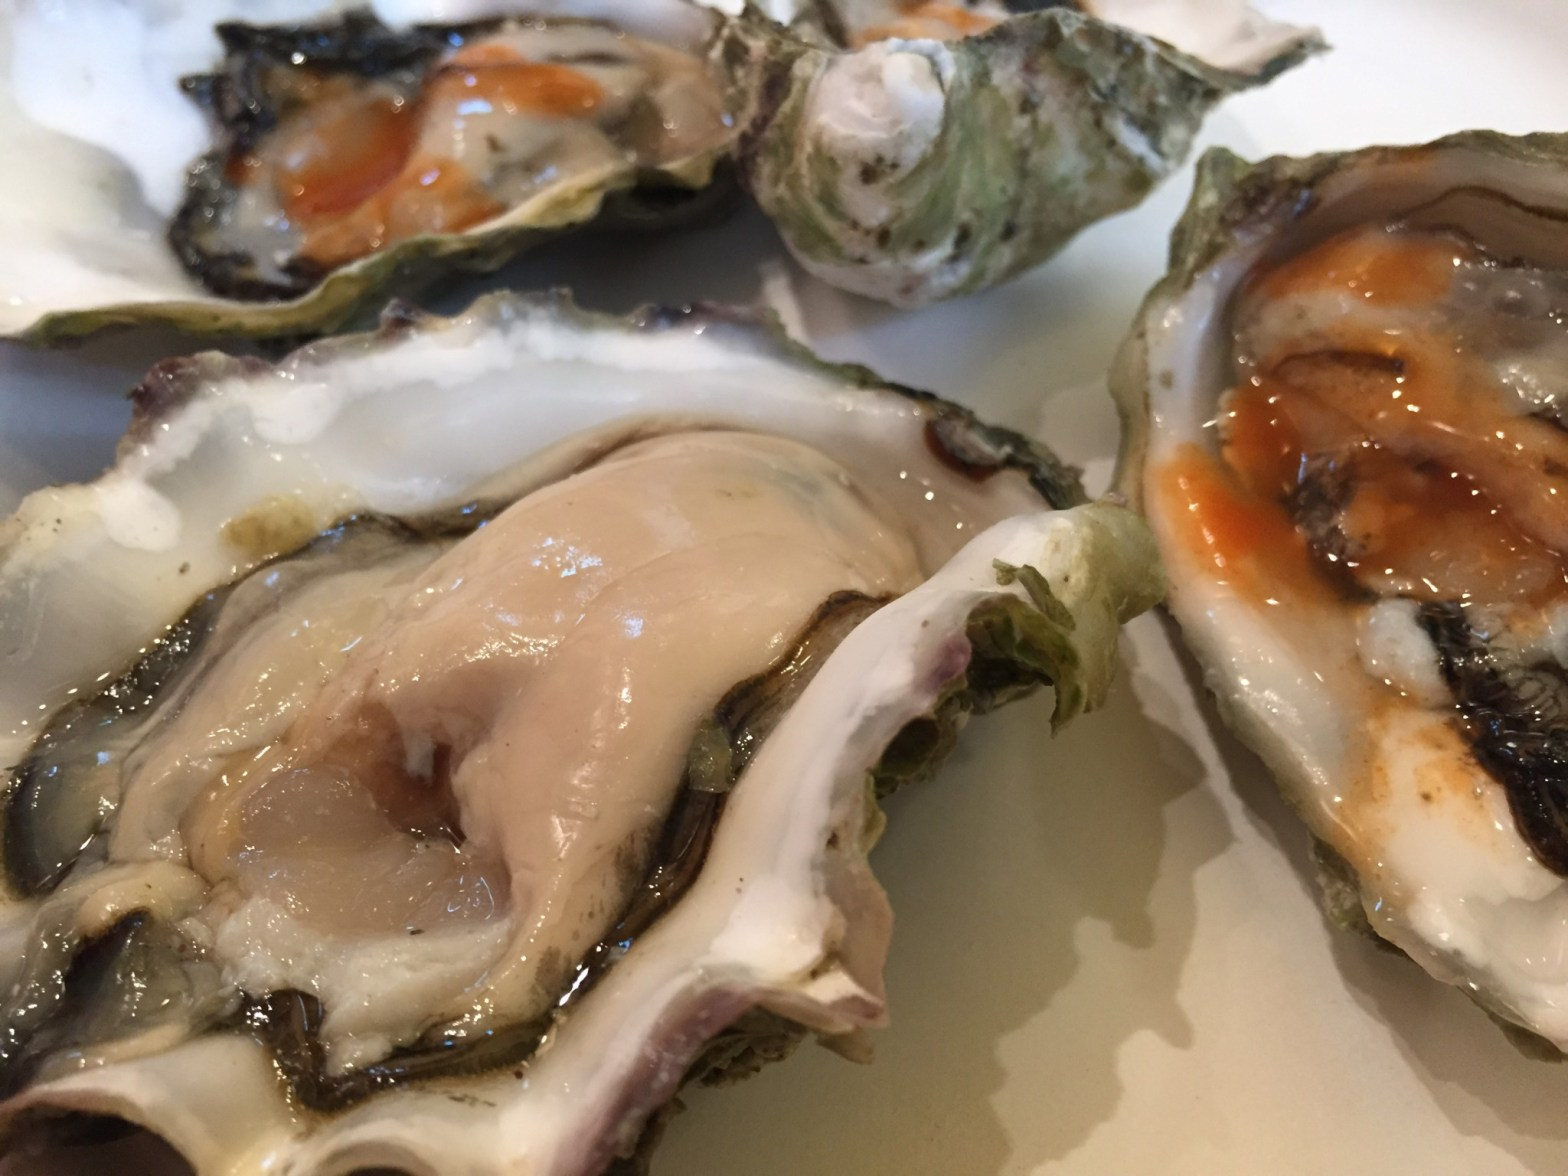 Oyster never tasted this fresh and fast, until San Francisco Fish Company.